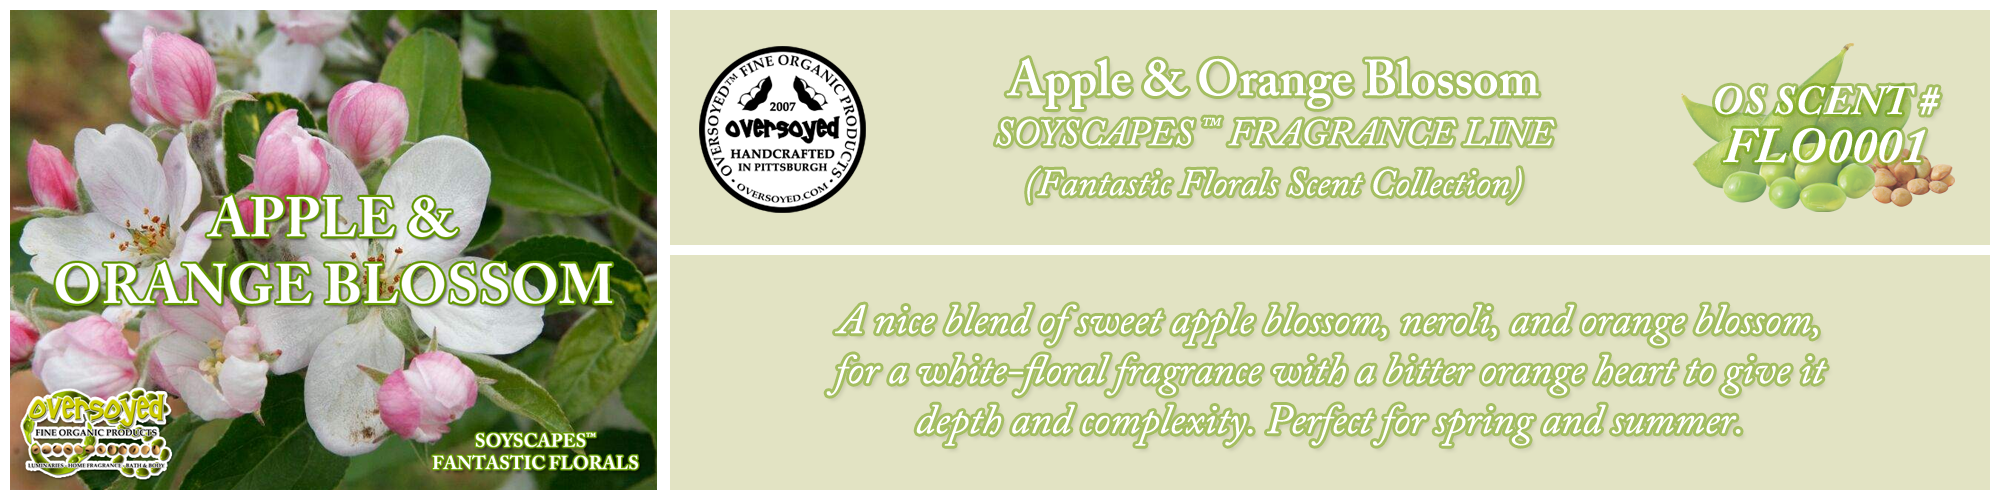 Apple & Orange Blossom Handcrafted Products Collection